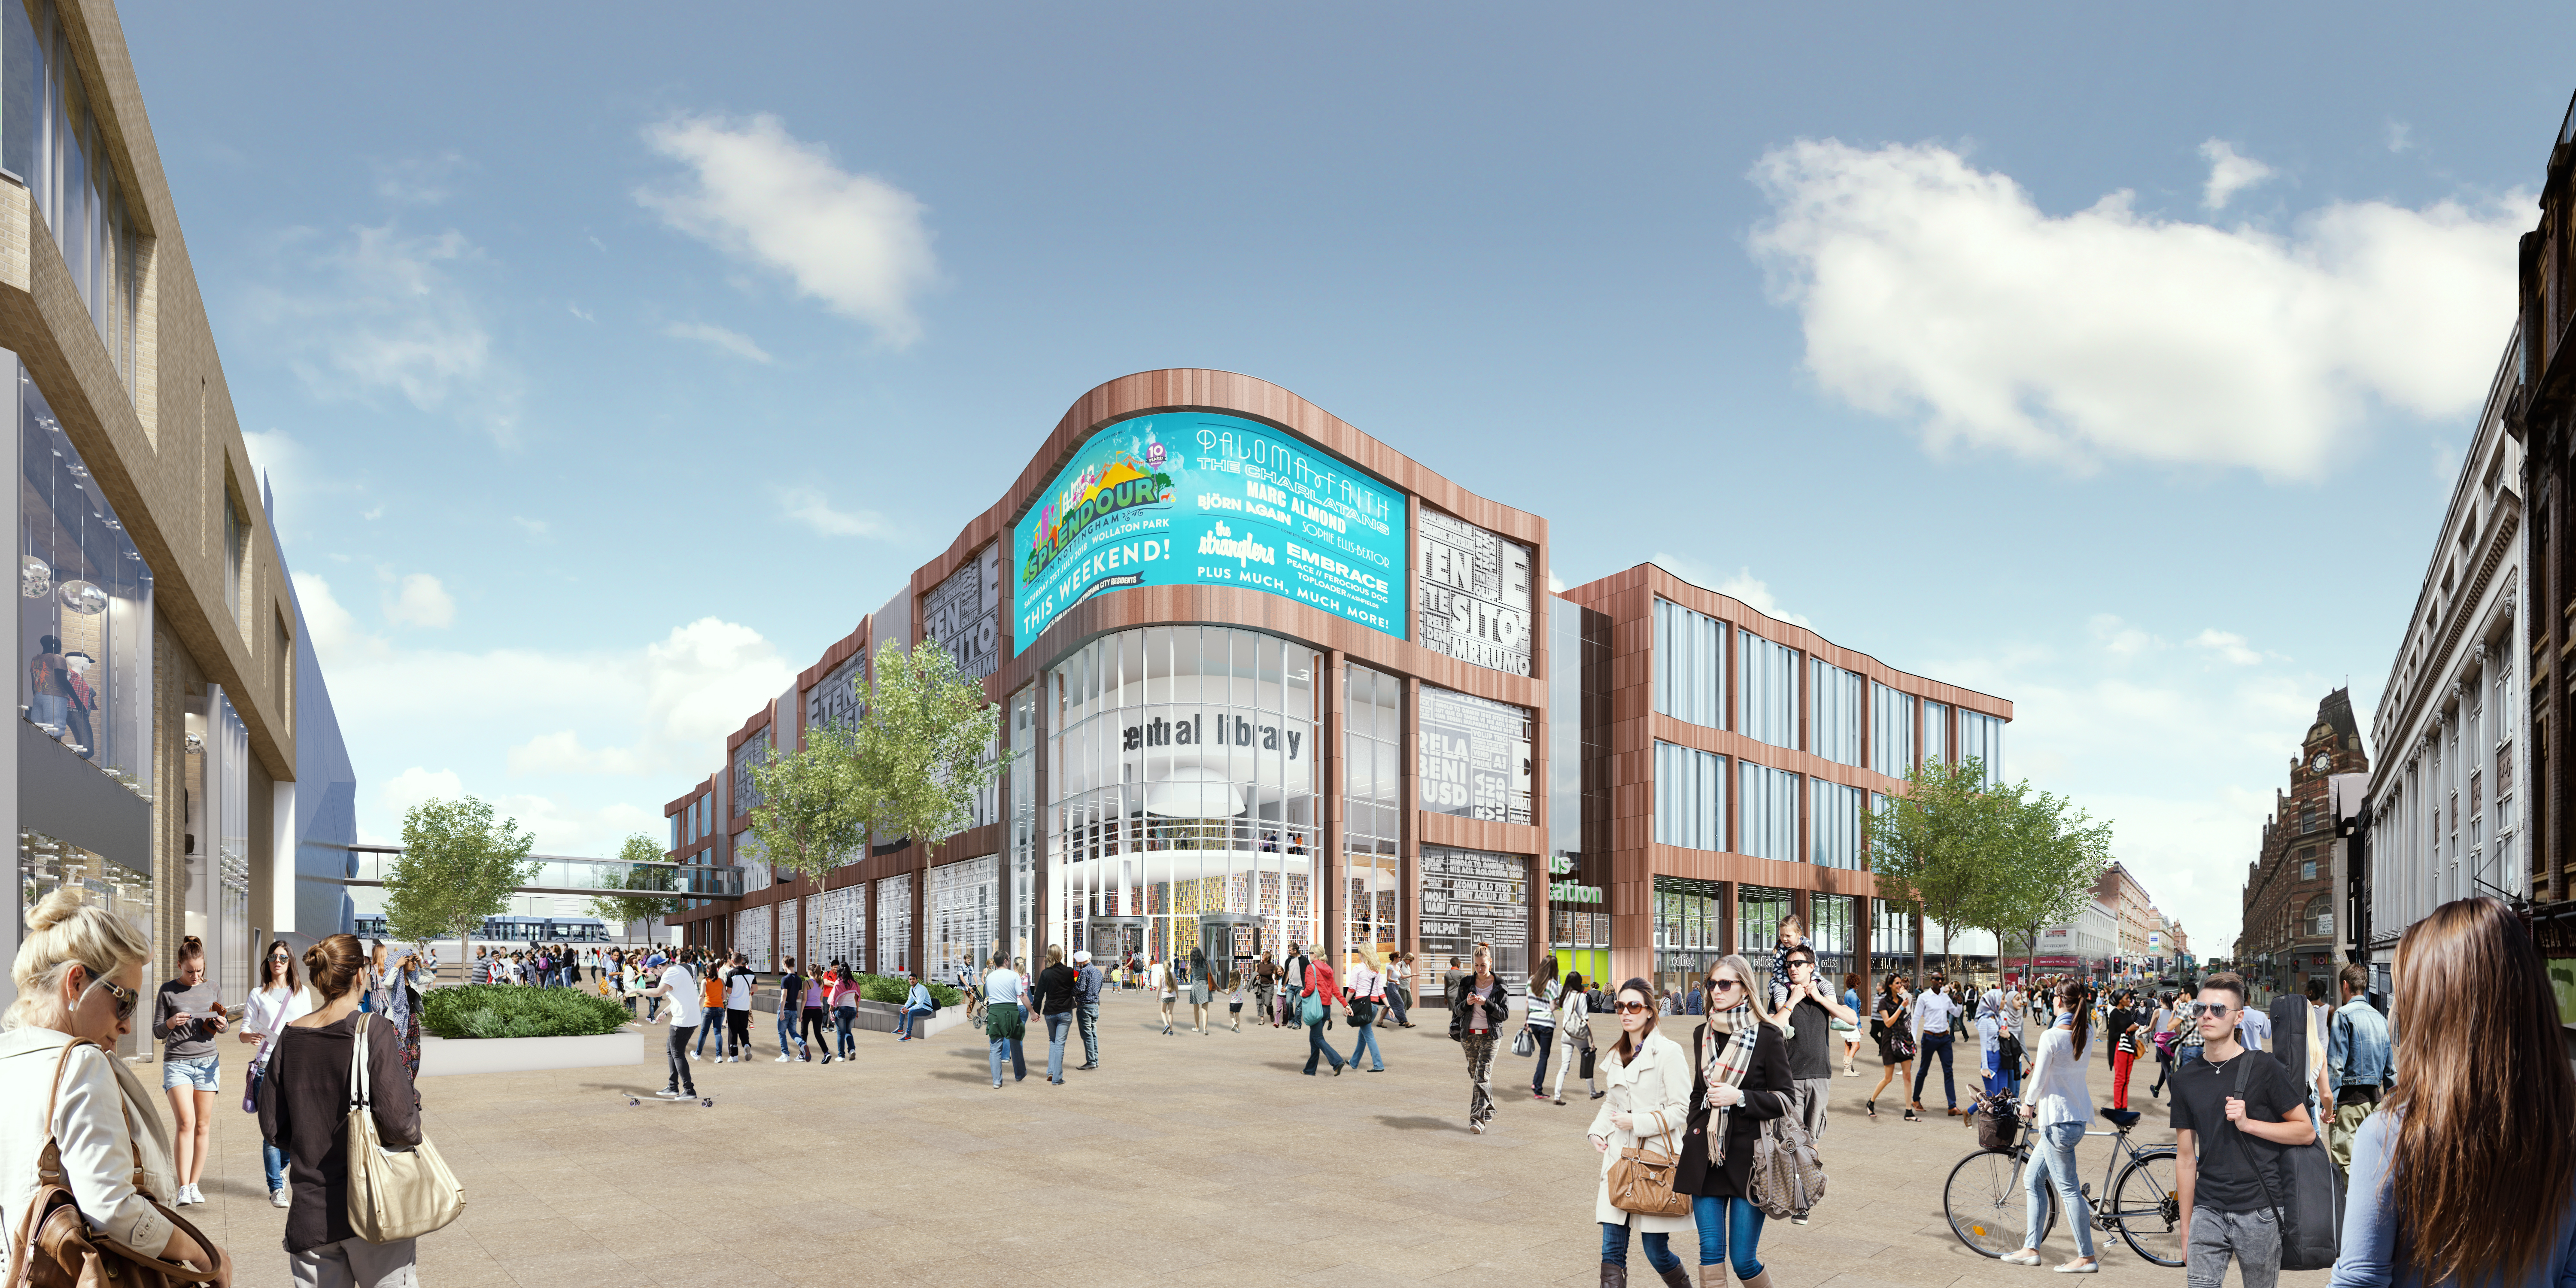 Broadmarsh artists impression